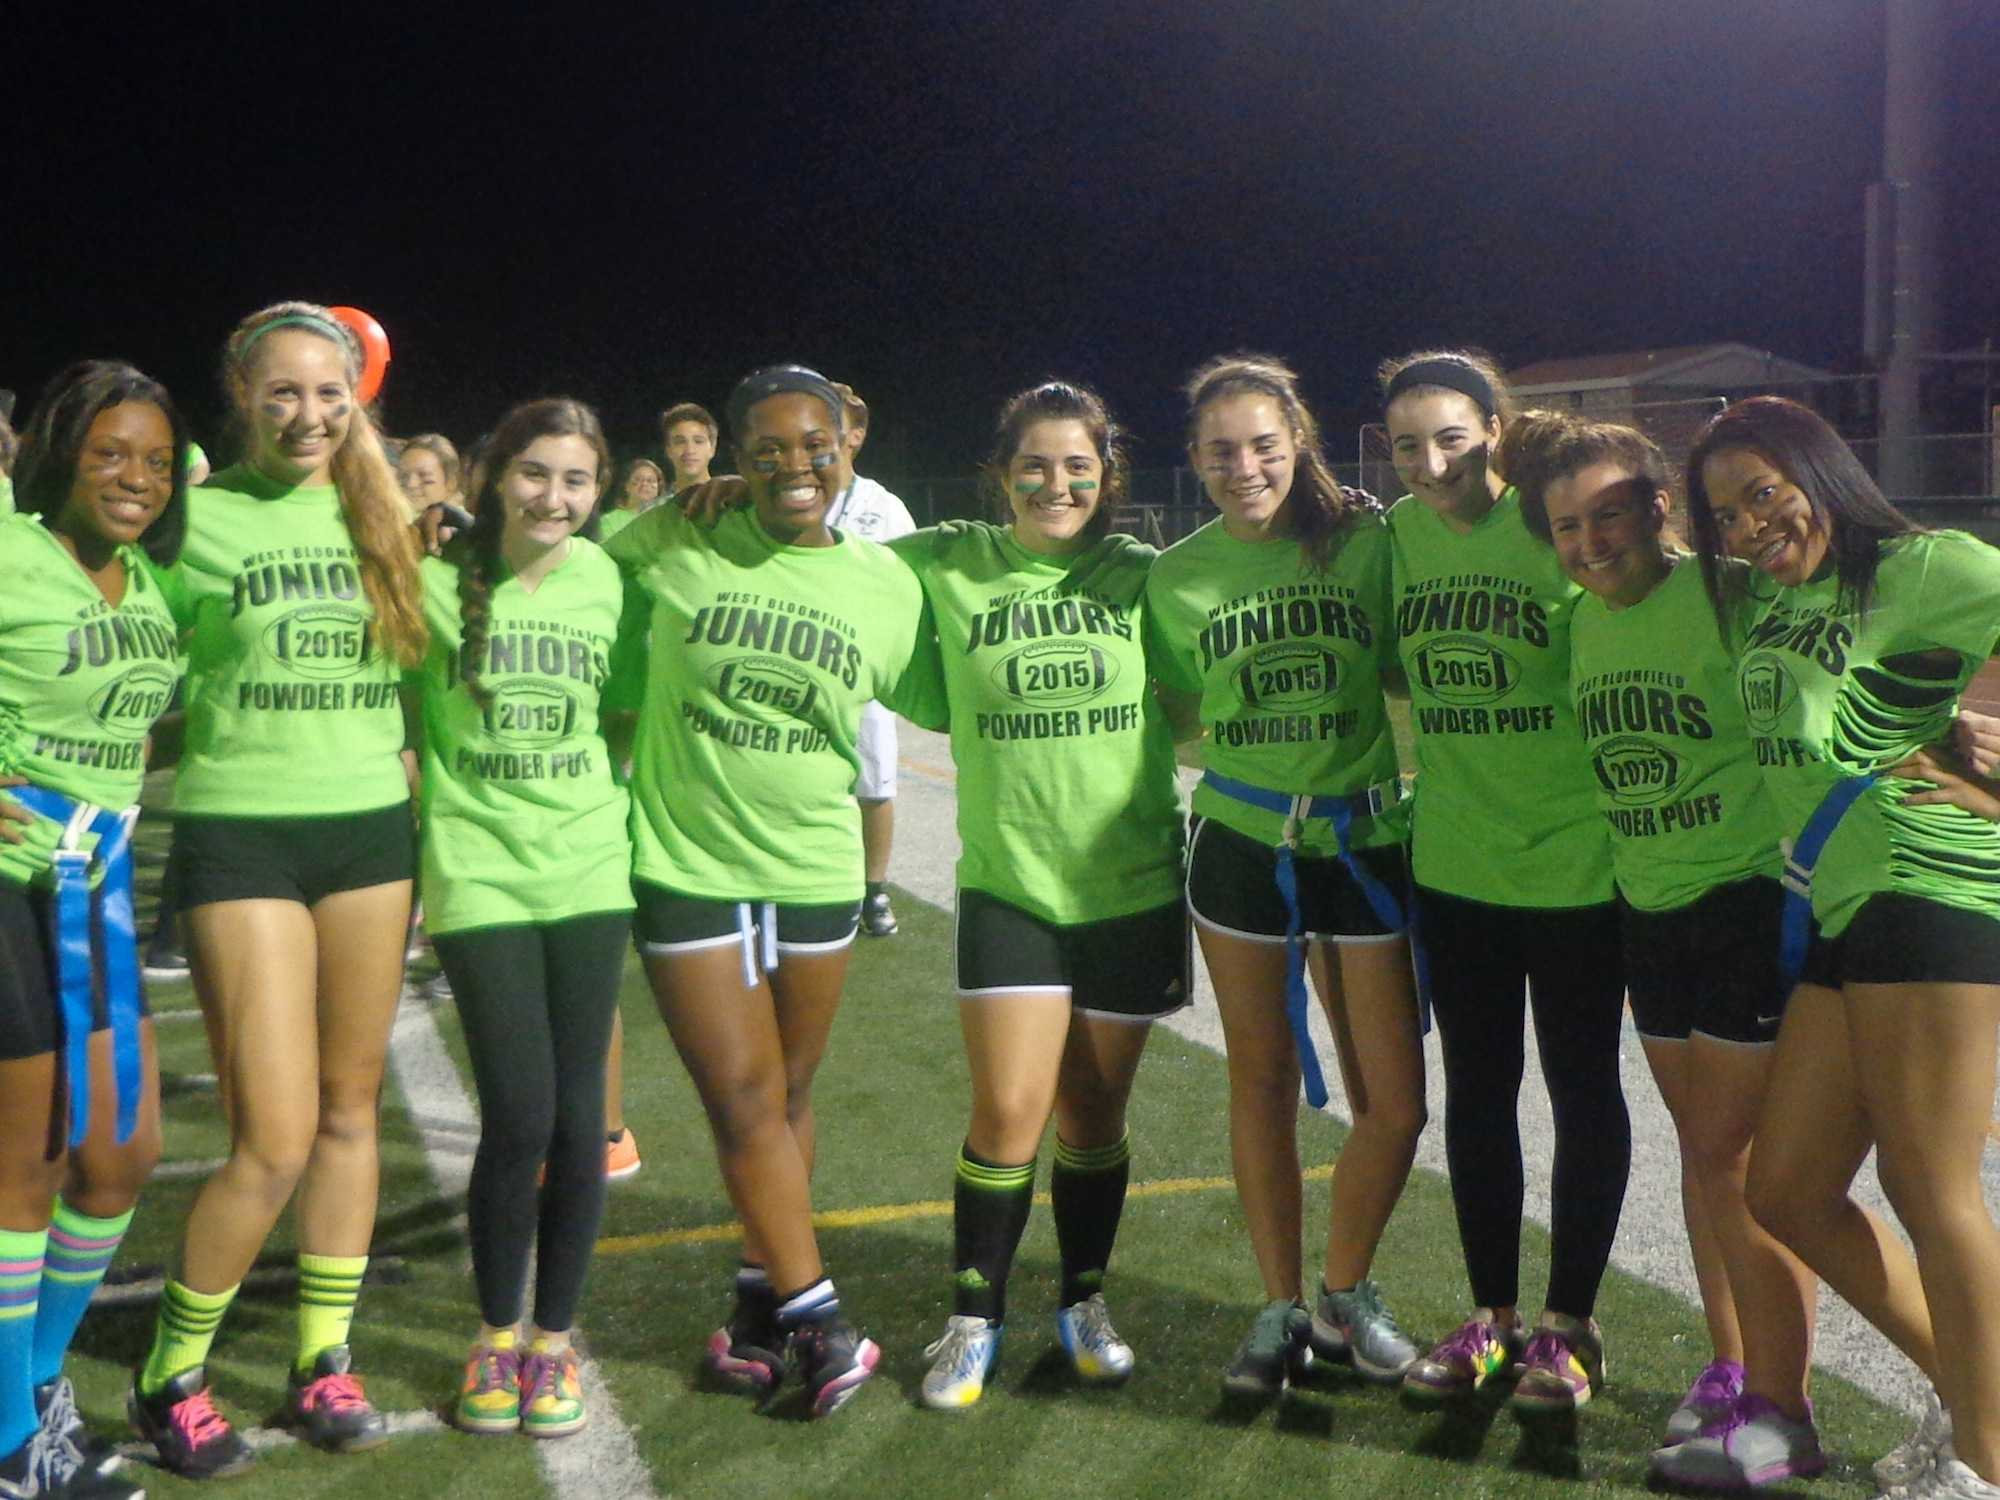 Part of the Junior Powder Puff Team